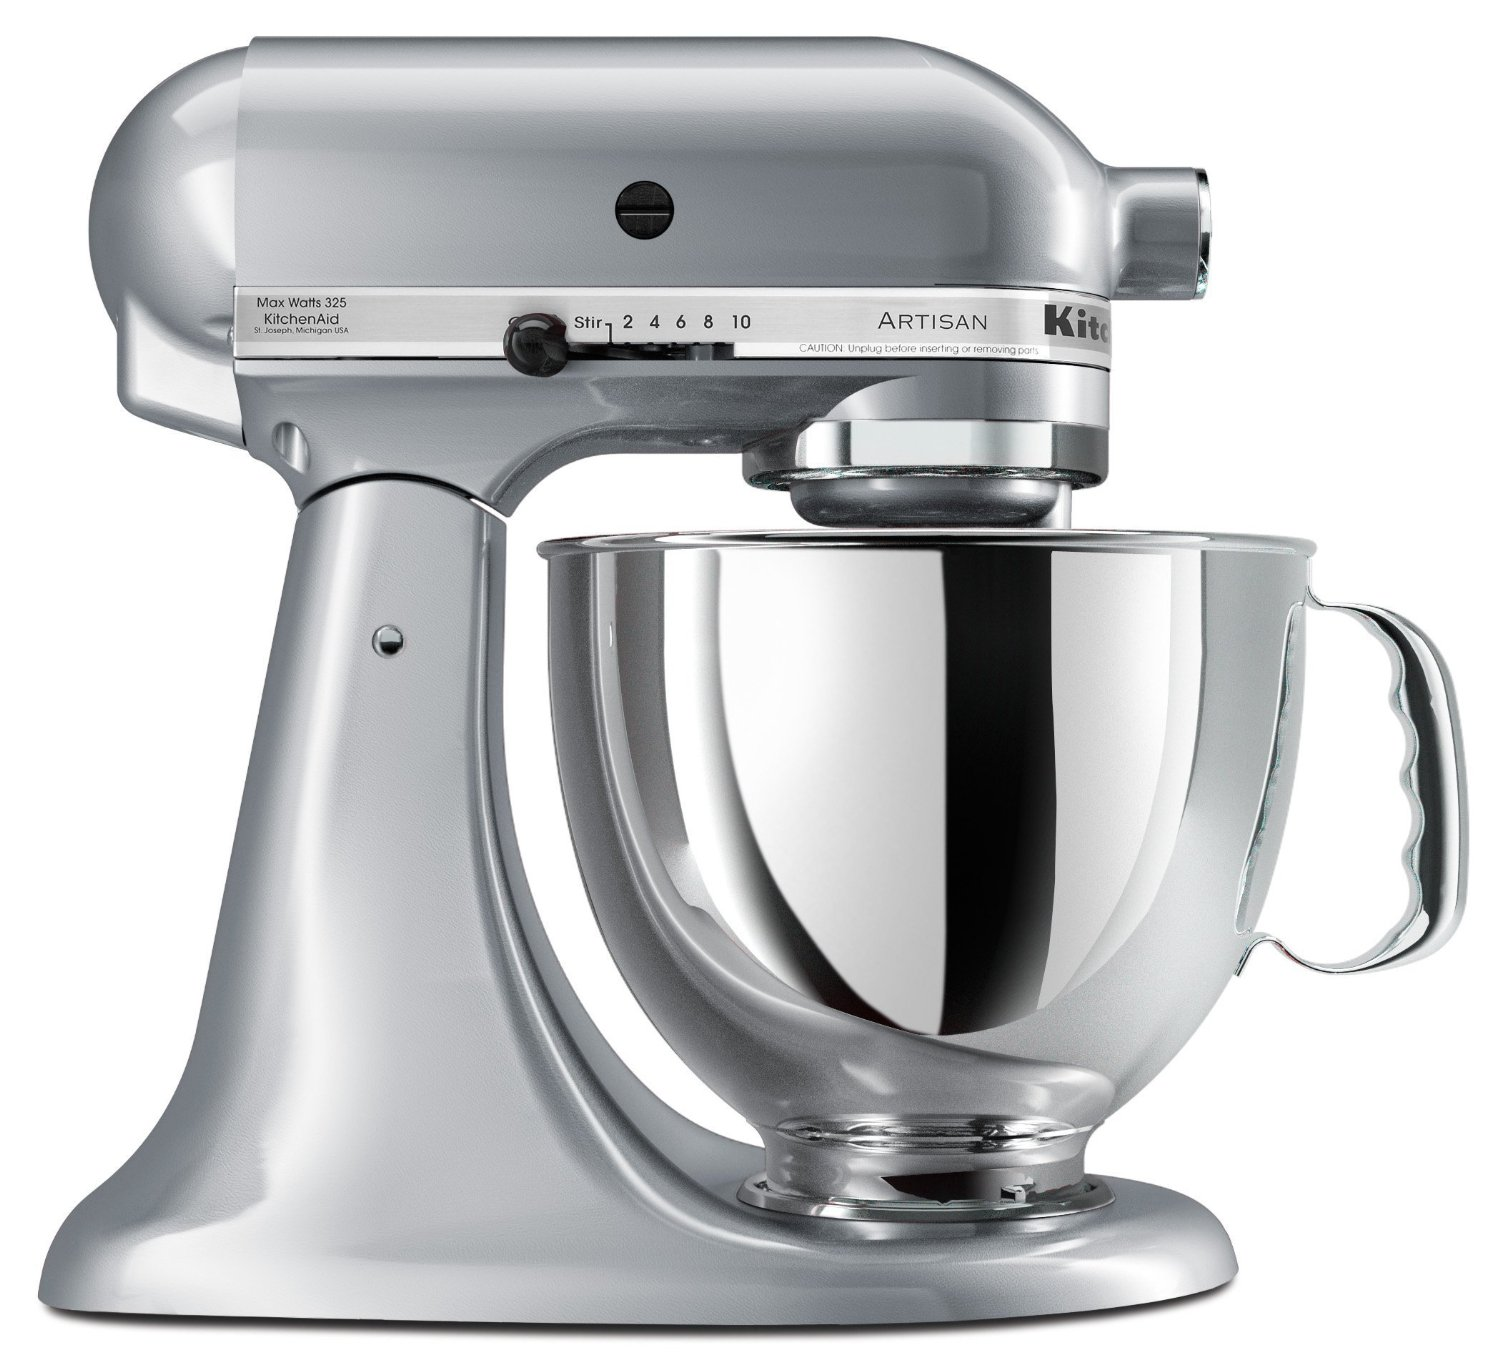 Best Food Mixer For Cakes